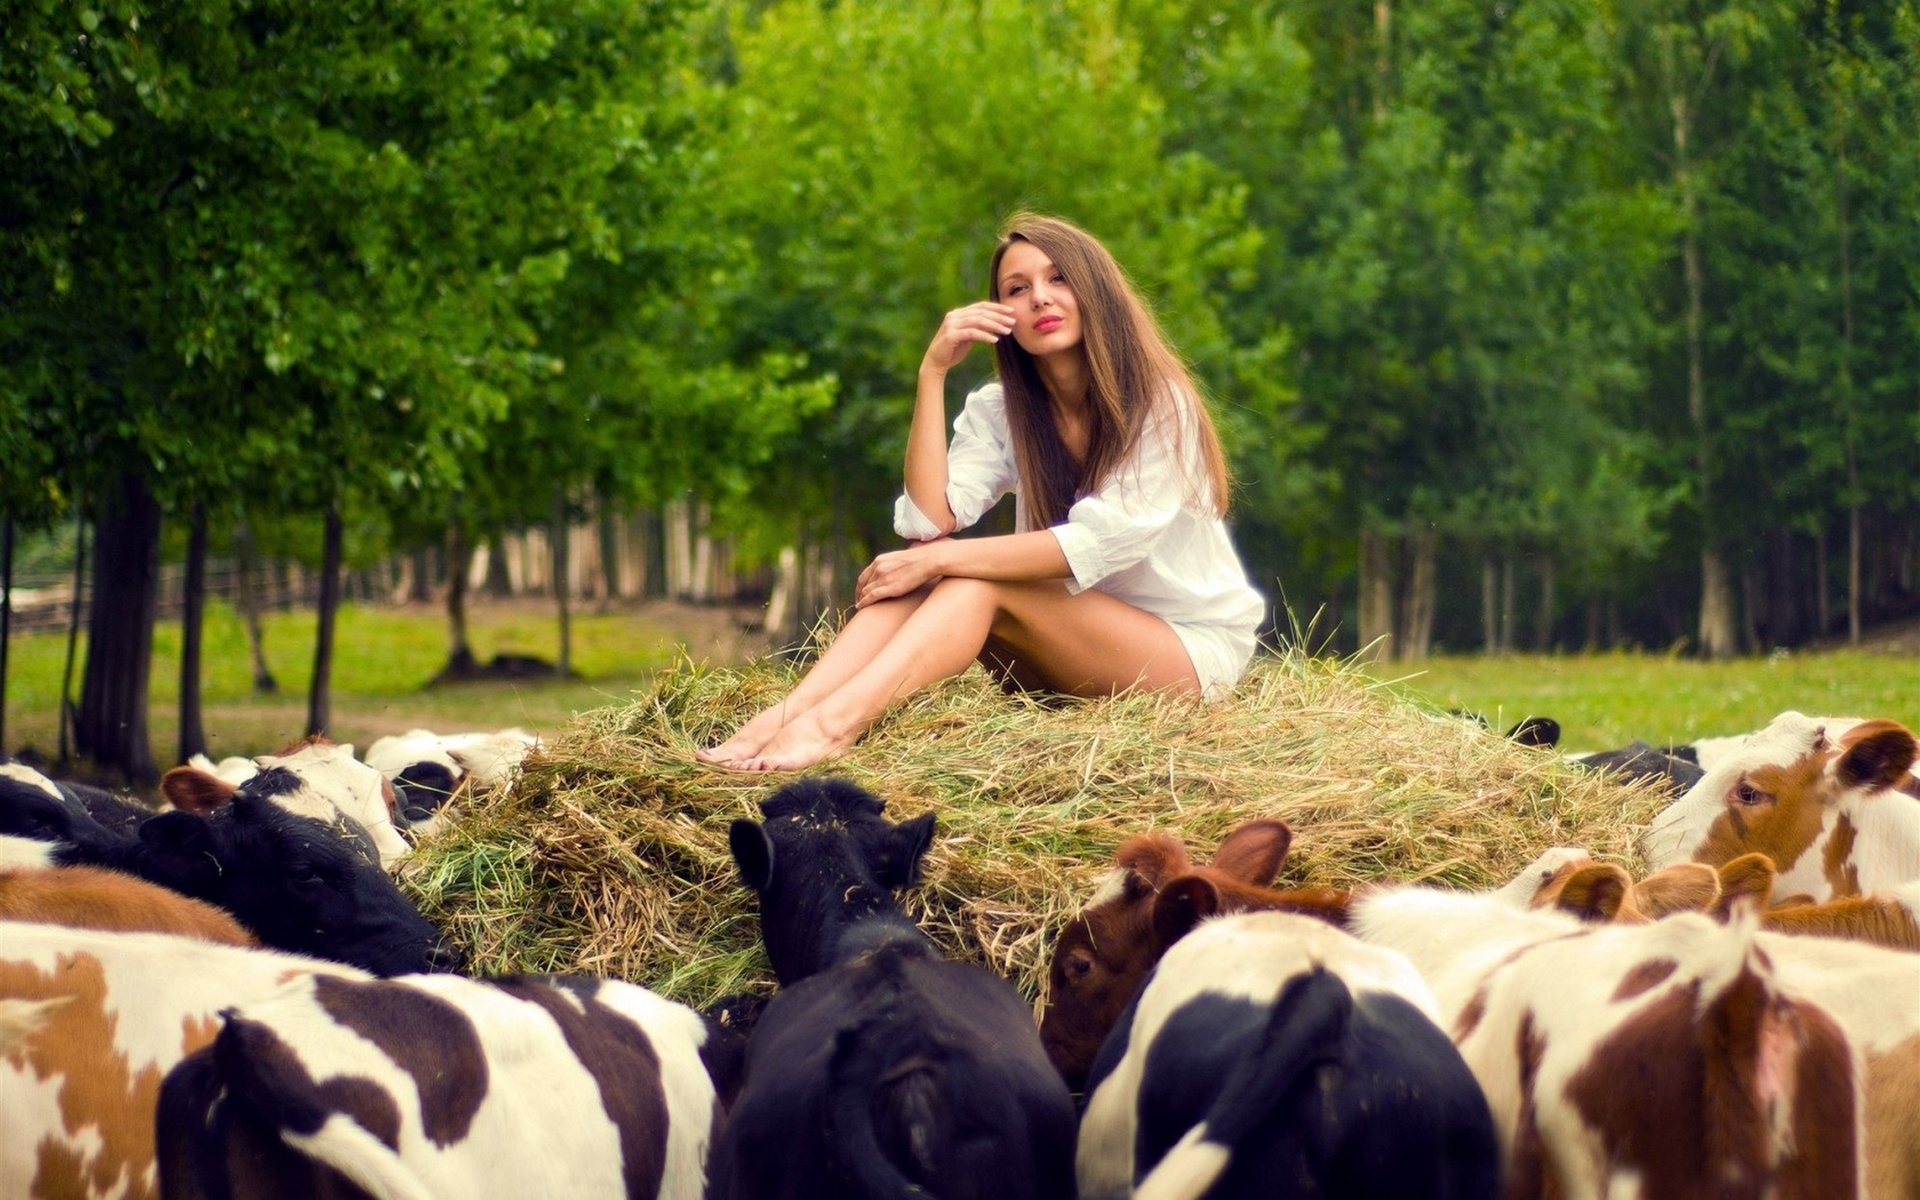 Cow's fucking wallpapers naked videos